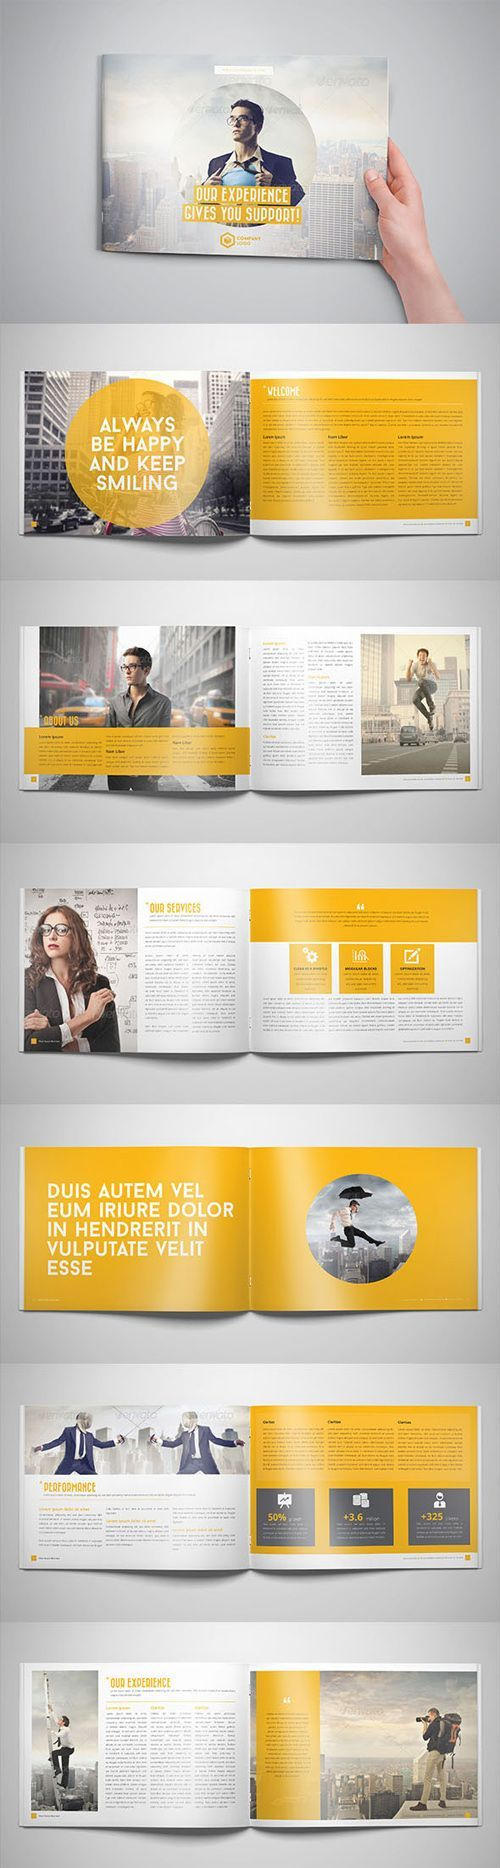 Business trifold brochure vol 4 by imagearea on creativemarket business trifold brochure vol 4 by imagearea on creativemarket 420 tri fold brochures pinterest accmission Images